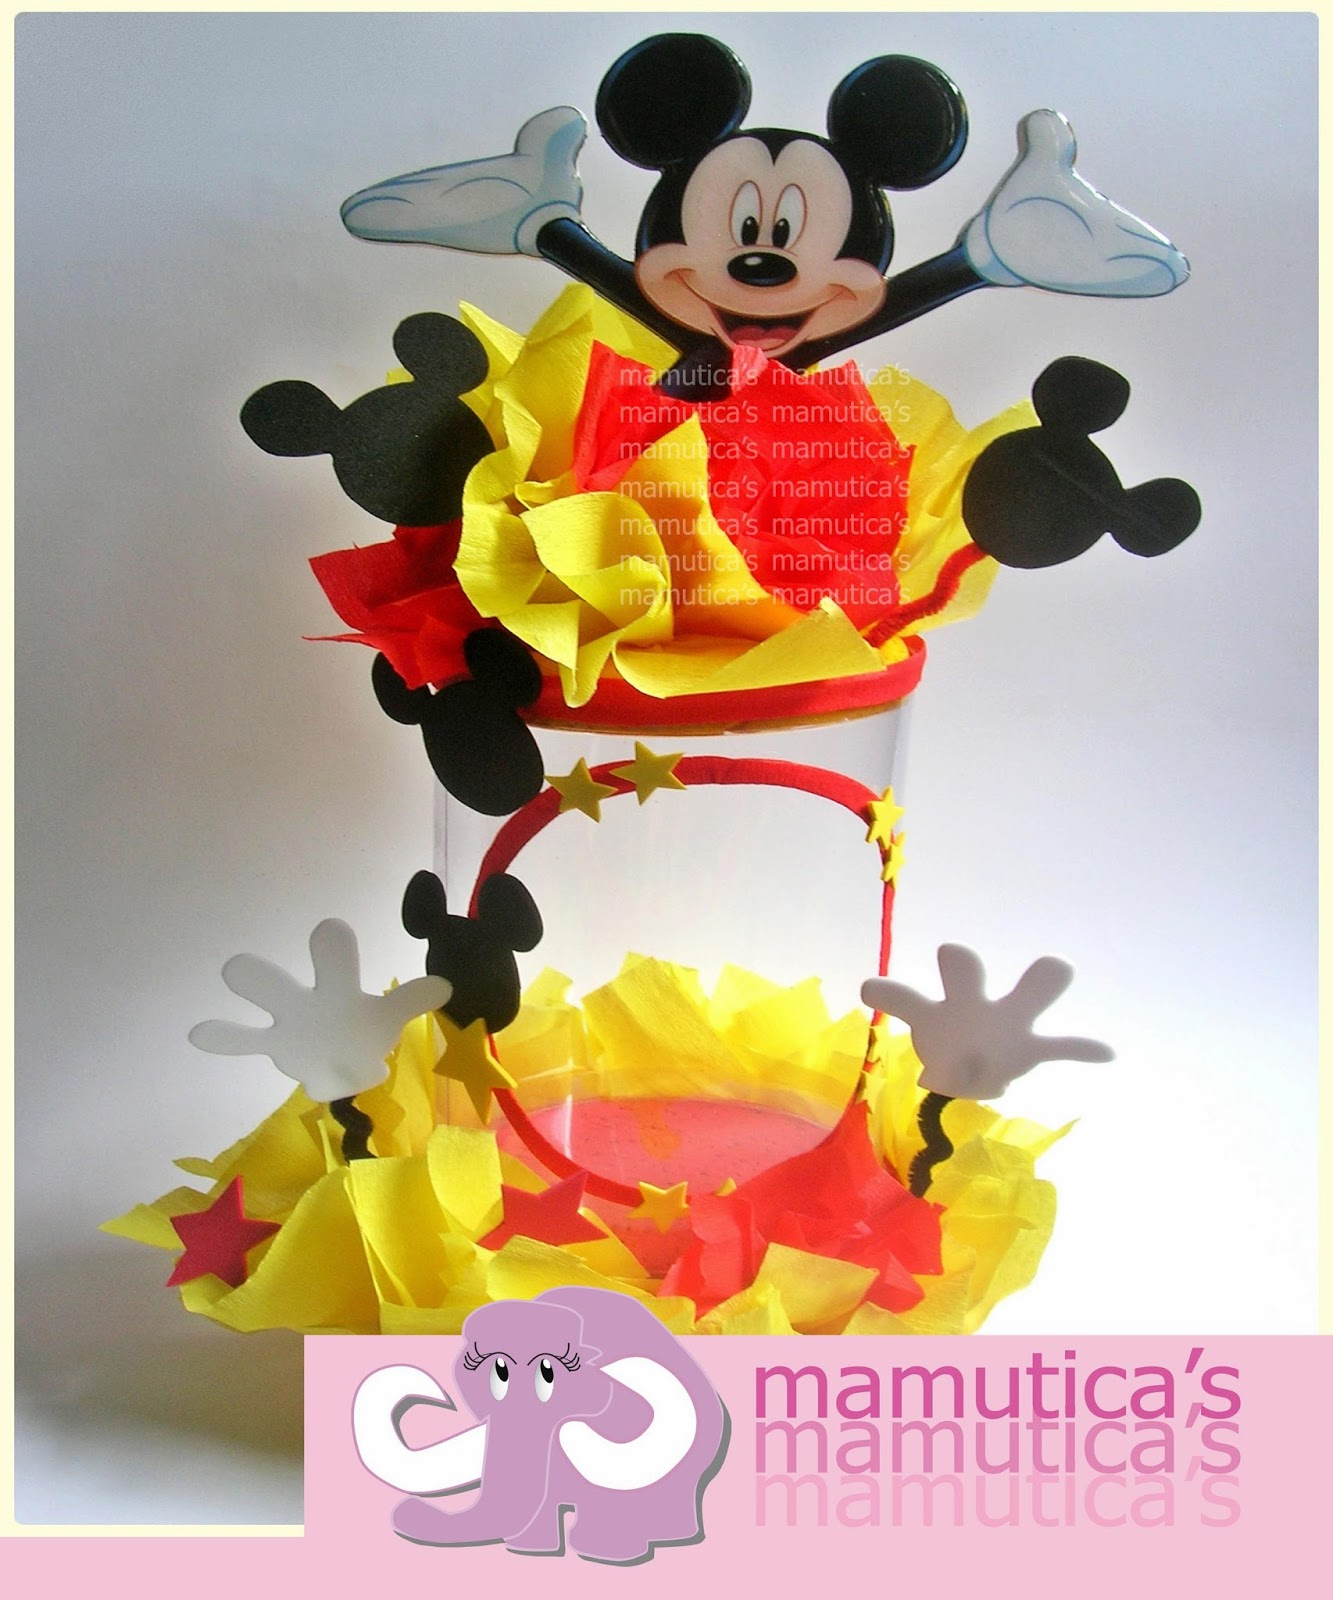 Chupeteros de Mickey Mouse - Imagui